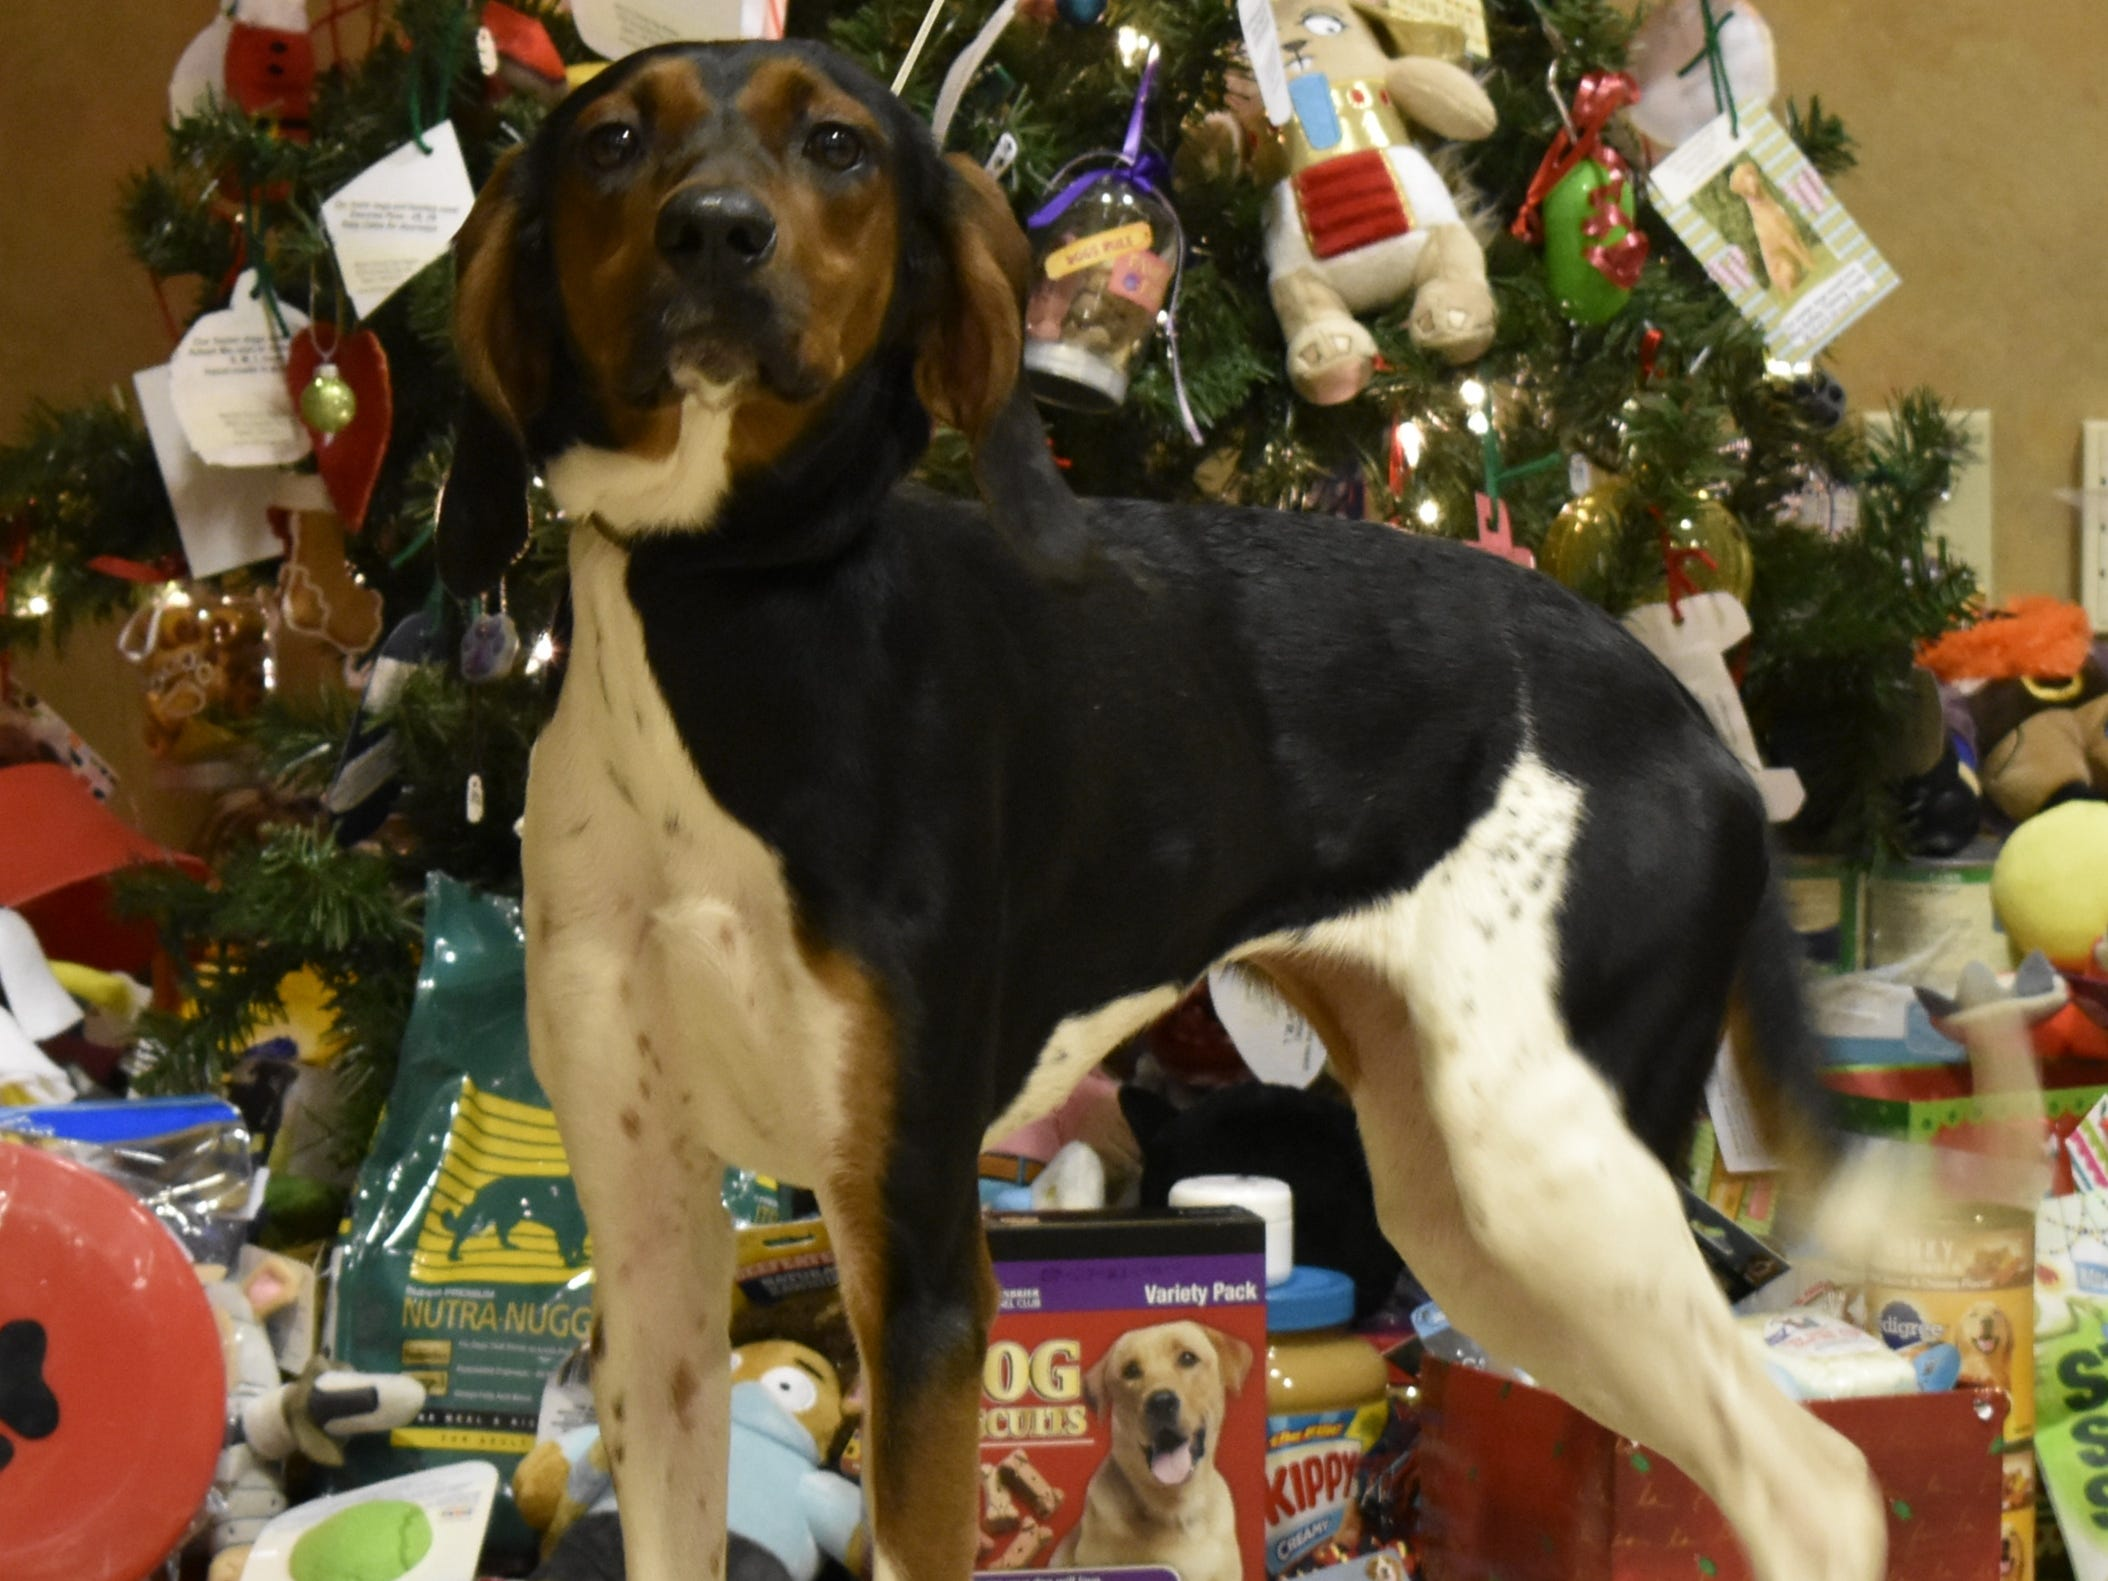 Dixie is a young adult female tri color Coonhound/Walker cross. She is a big puppy that loves playing with toys, going for jogs and hanging with dog friends. She is looking to learn with a nice family. Contact Marion County Dog Services at 503-588-5366 or go to www.MCDogs.net.